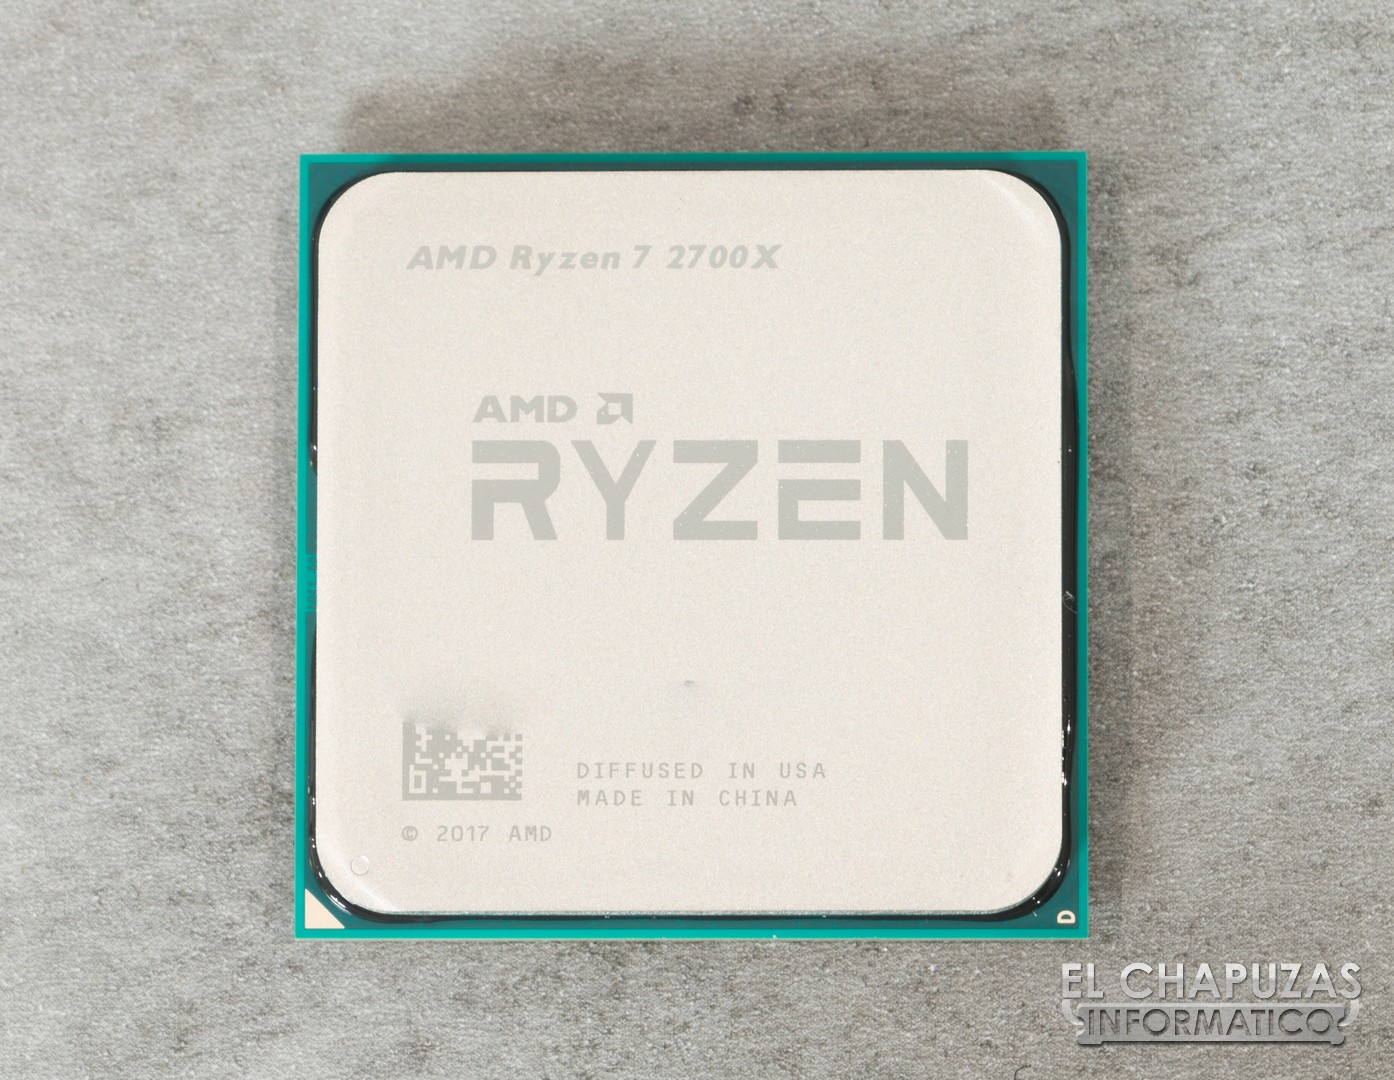 Virtualization On Ryzen